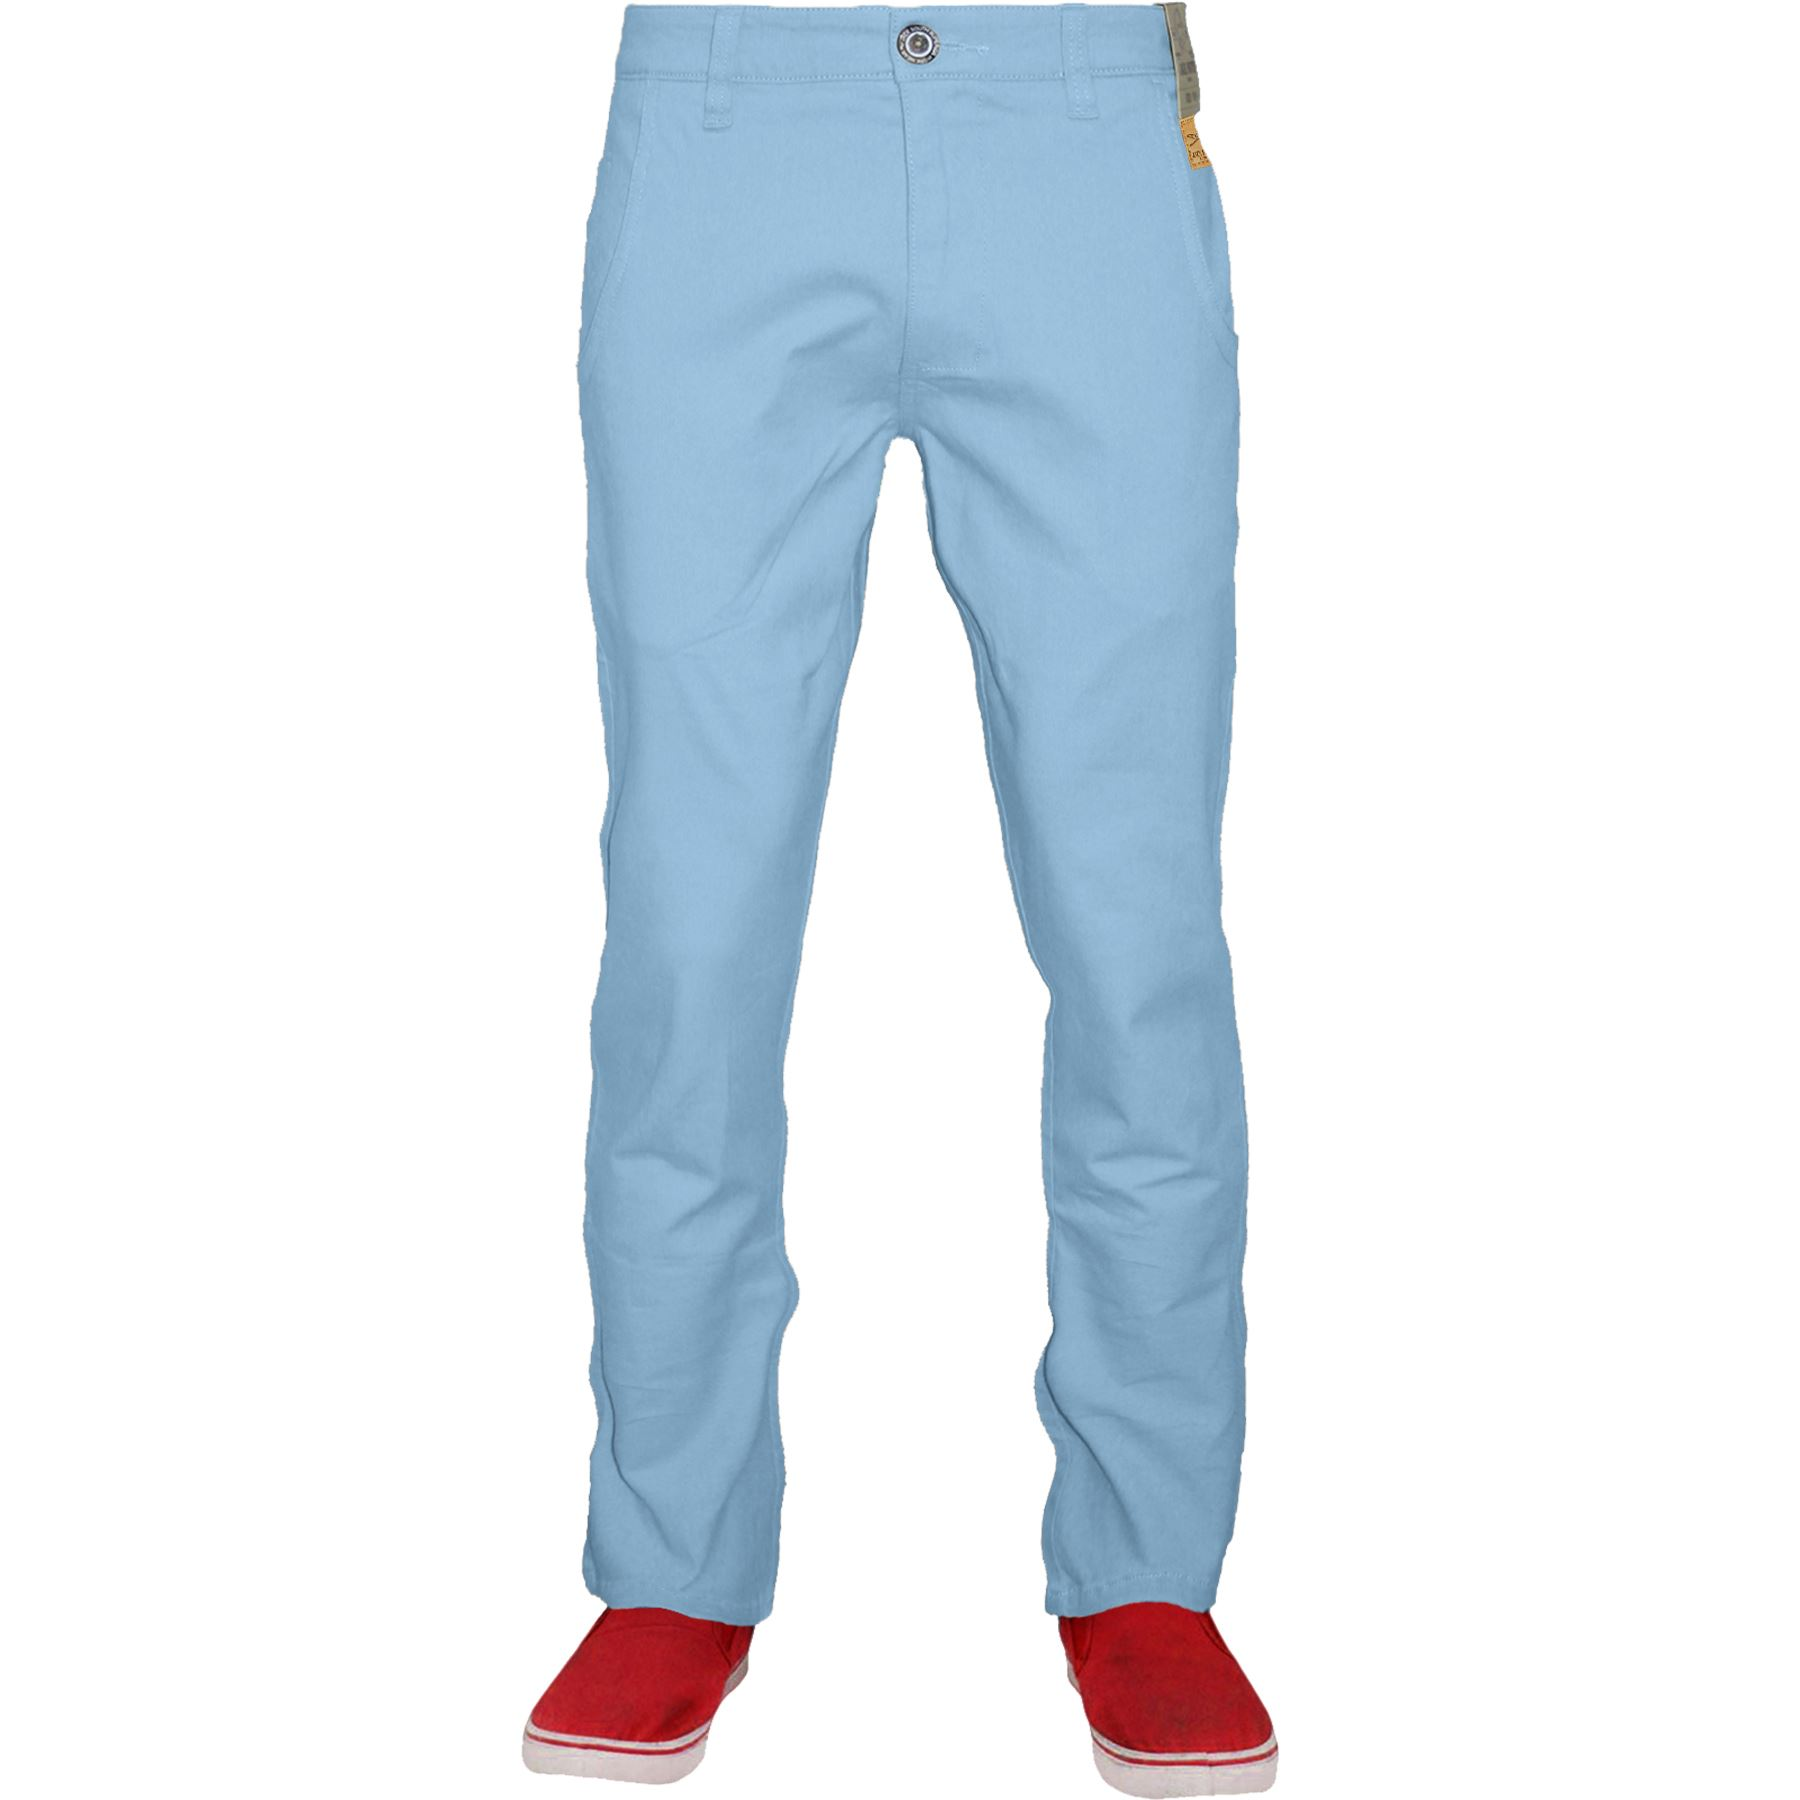 Mens-Stretch-Chino-Jacksouth-Designer-Regular-Fit-Straight-Leg-Trousers-Cotton thumbnail 11